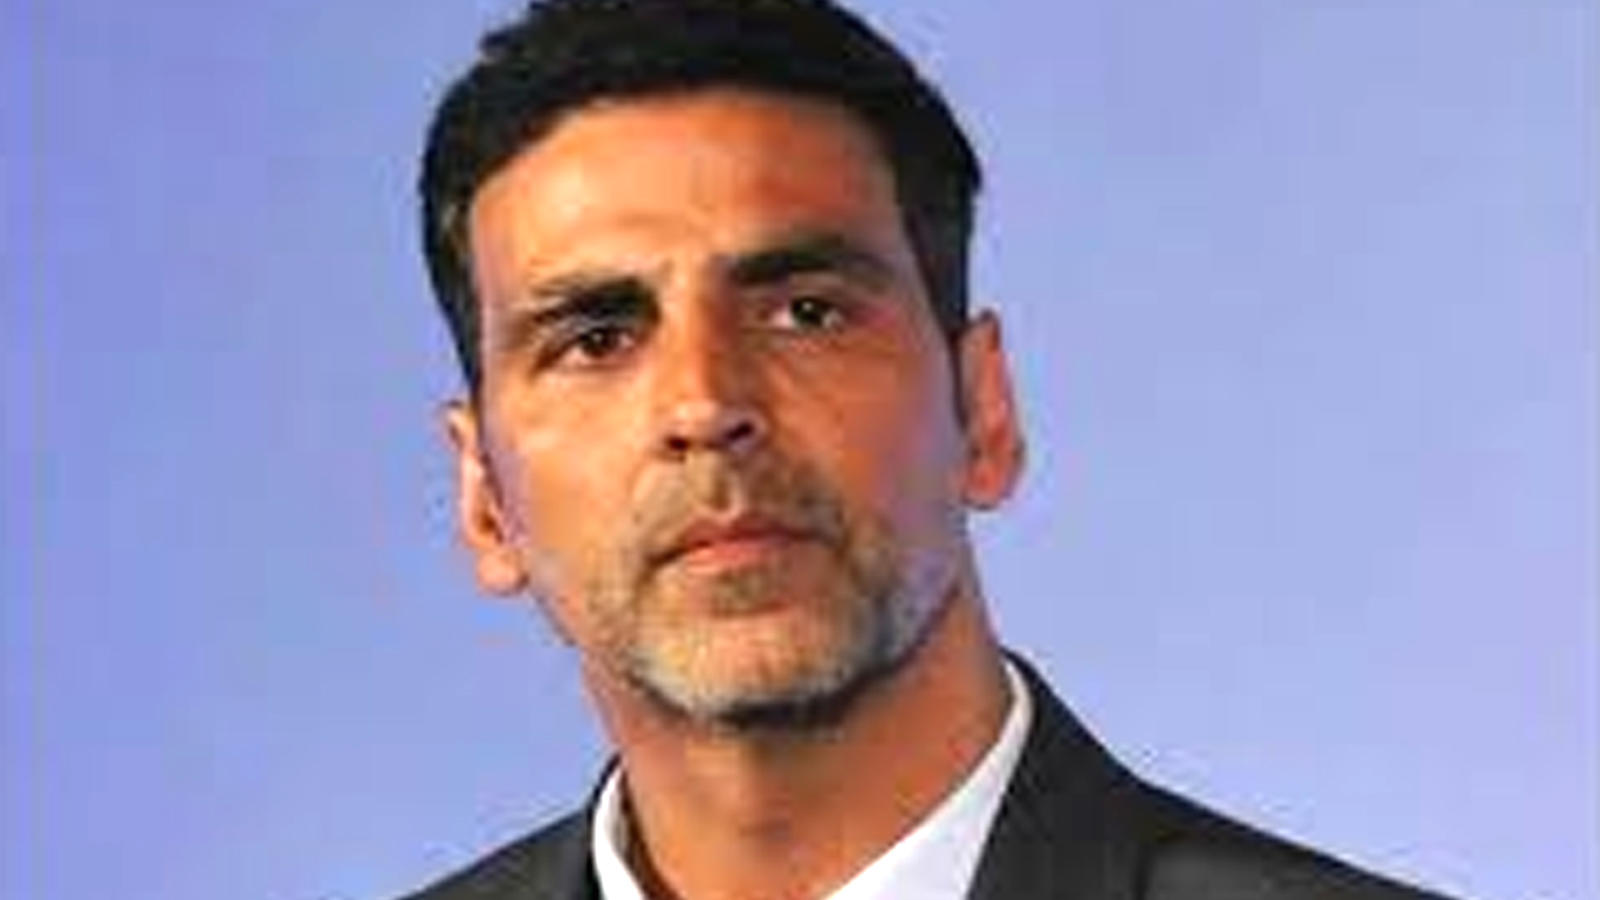 Forbes Richest Celebrity Akshay Kumar, Akshay Kumar is the only Bollywood star in Forbes rich celebrities list